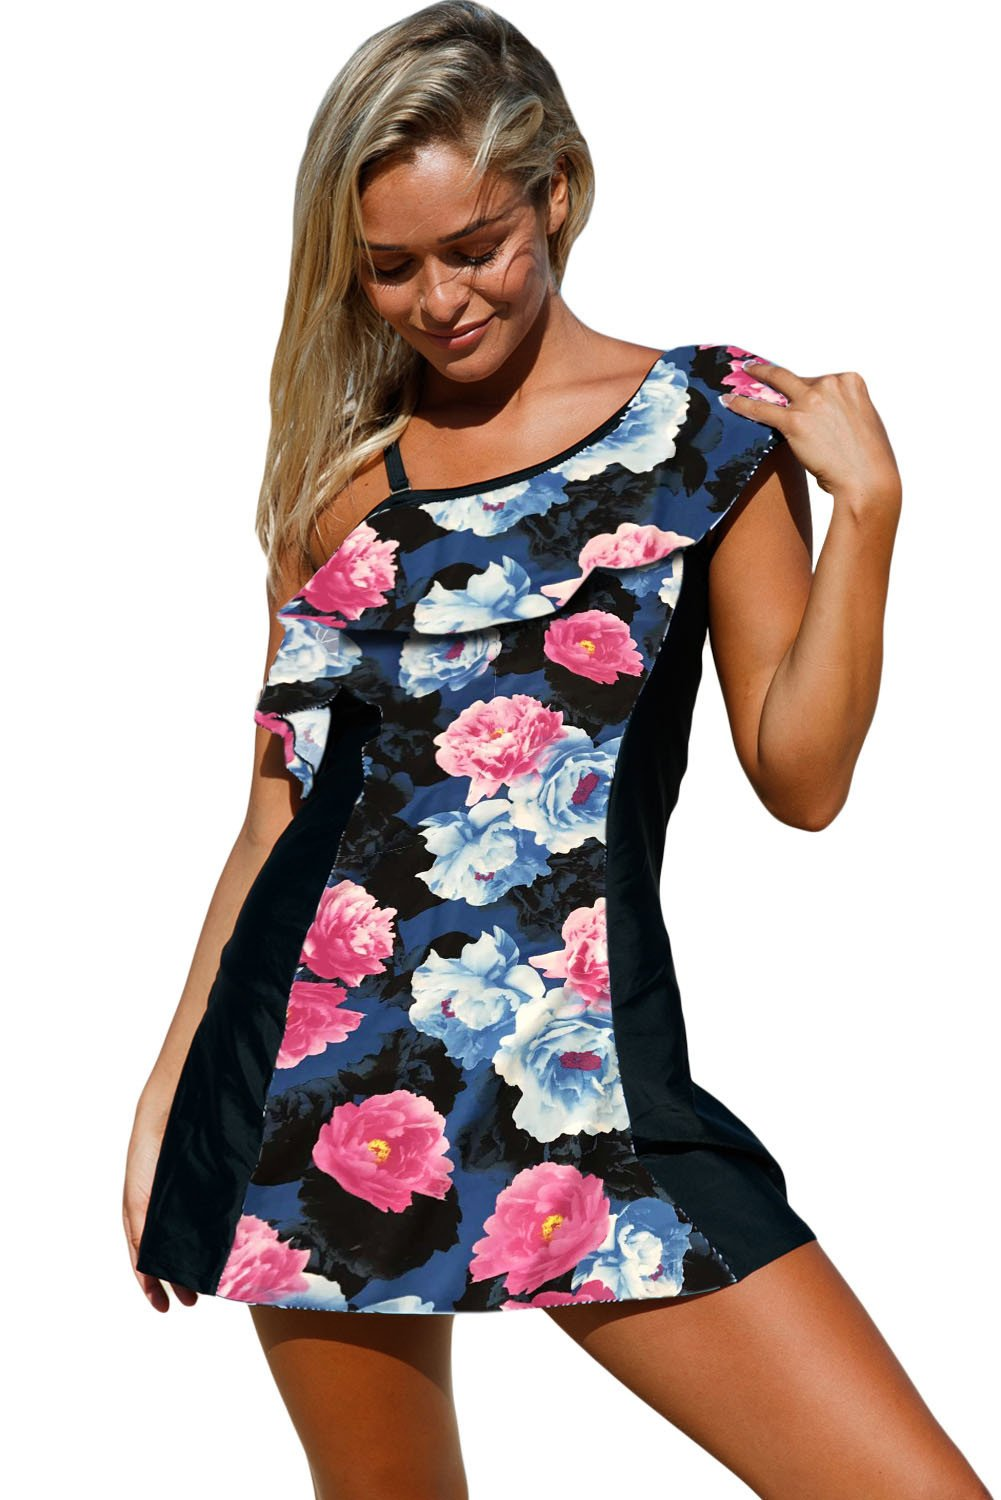 Chic Floral Print Ruffle One Shoulder Swim Dress with Shorts - Winter Haven Co